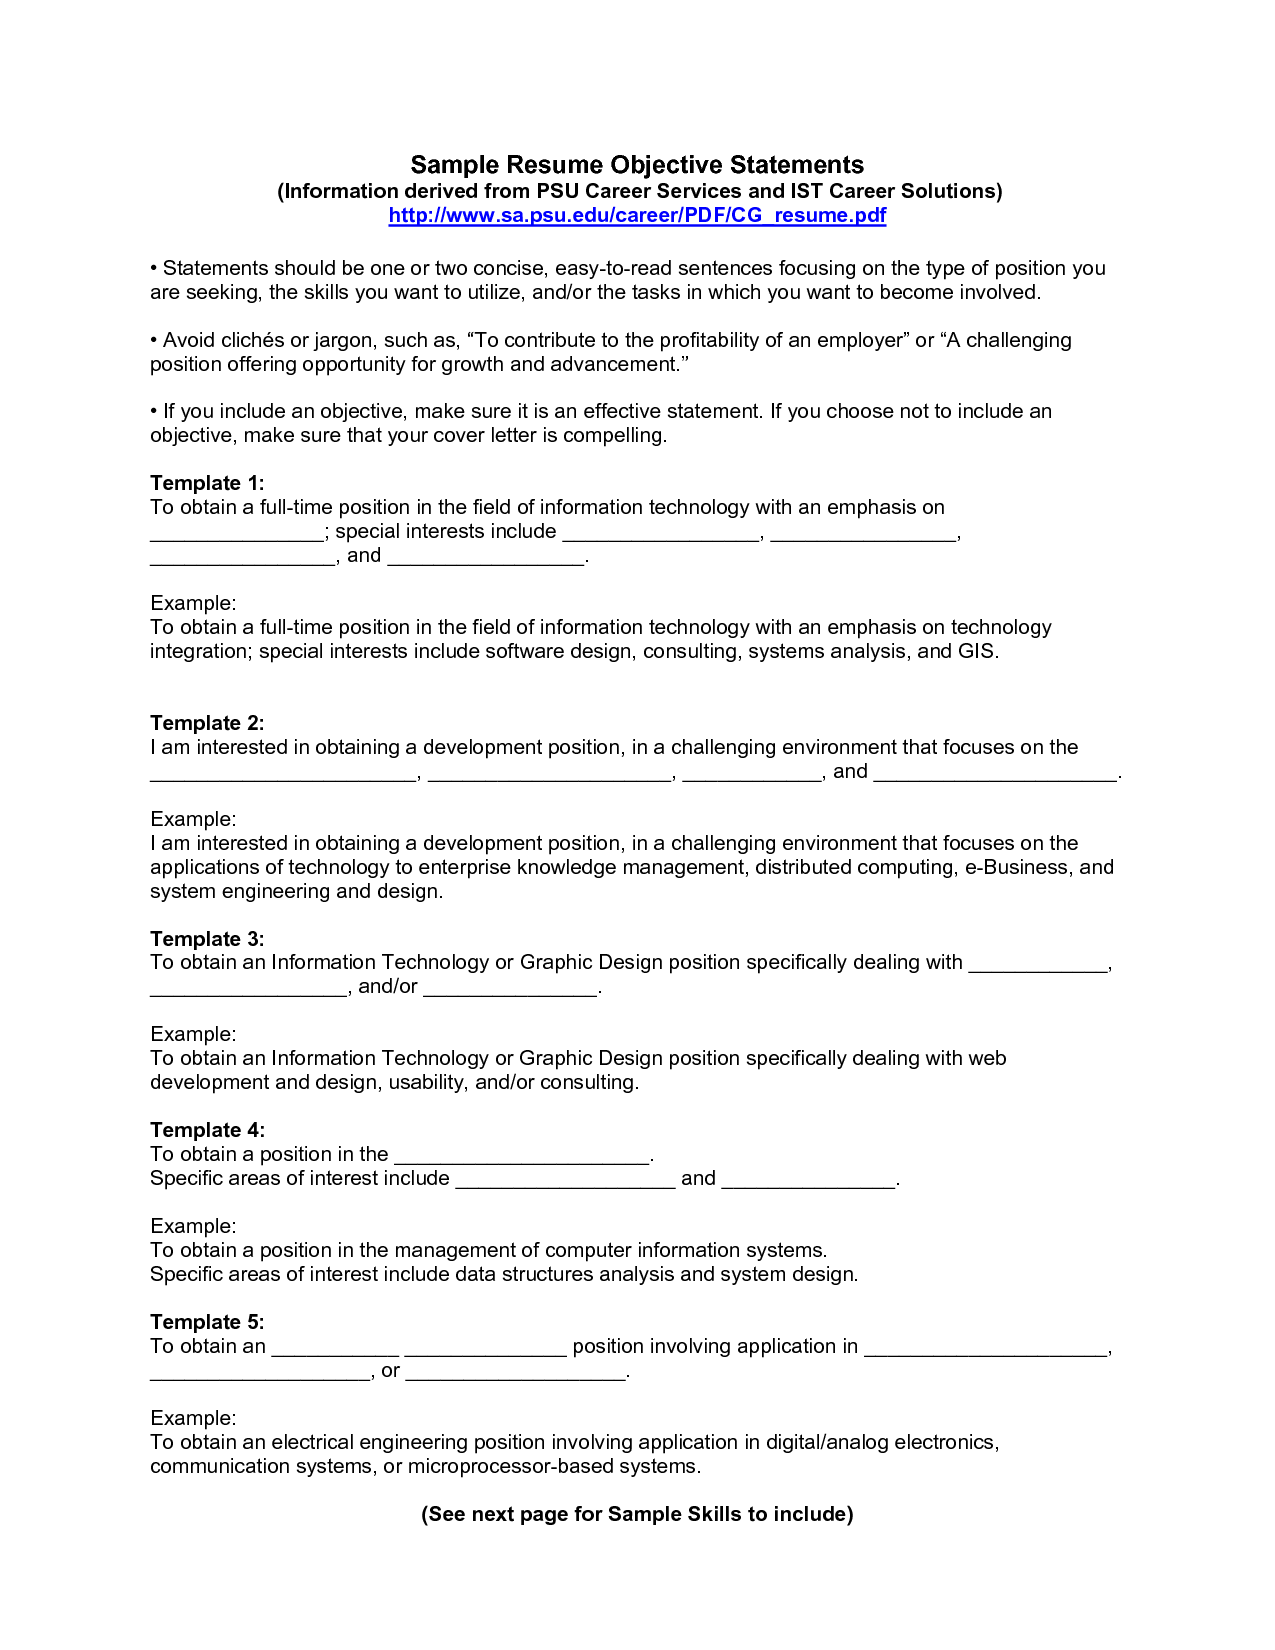 Resume Teaching Objective Resume Objective Statement For Teacher  Httpwww.resumecareer .